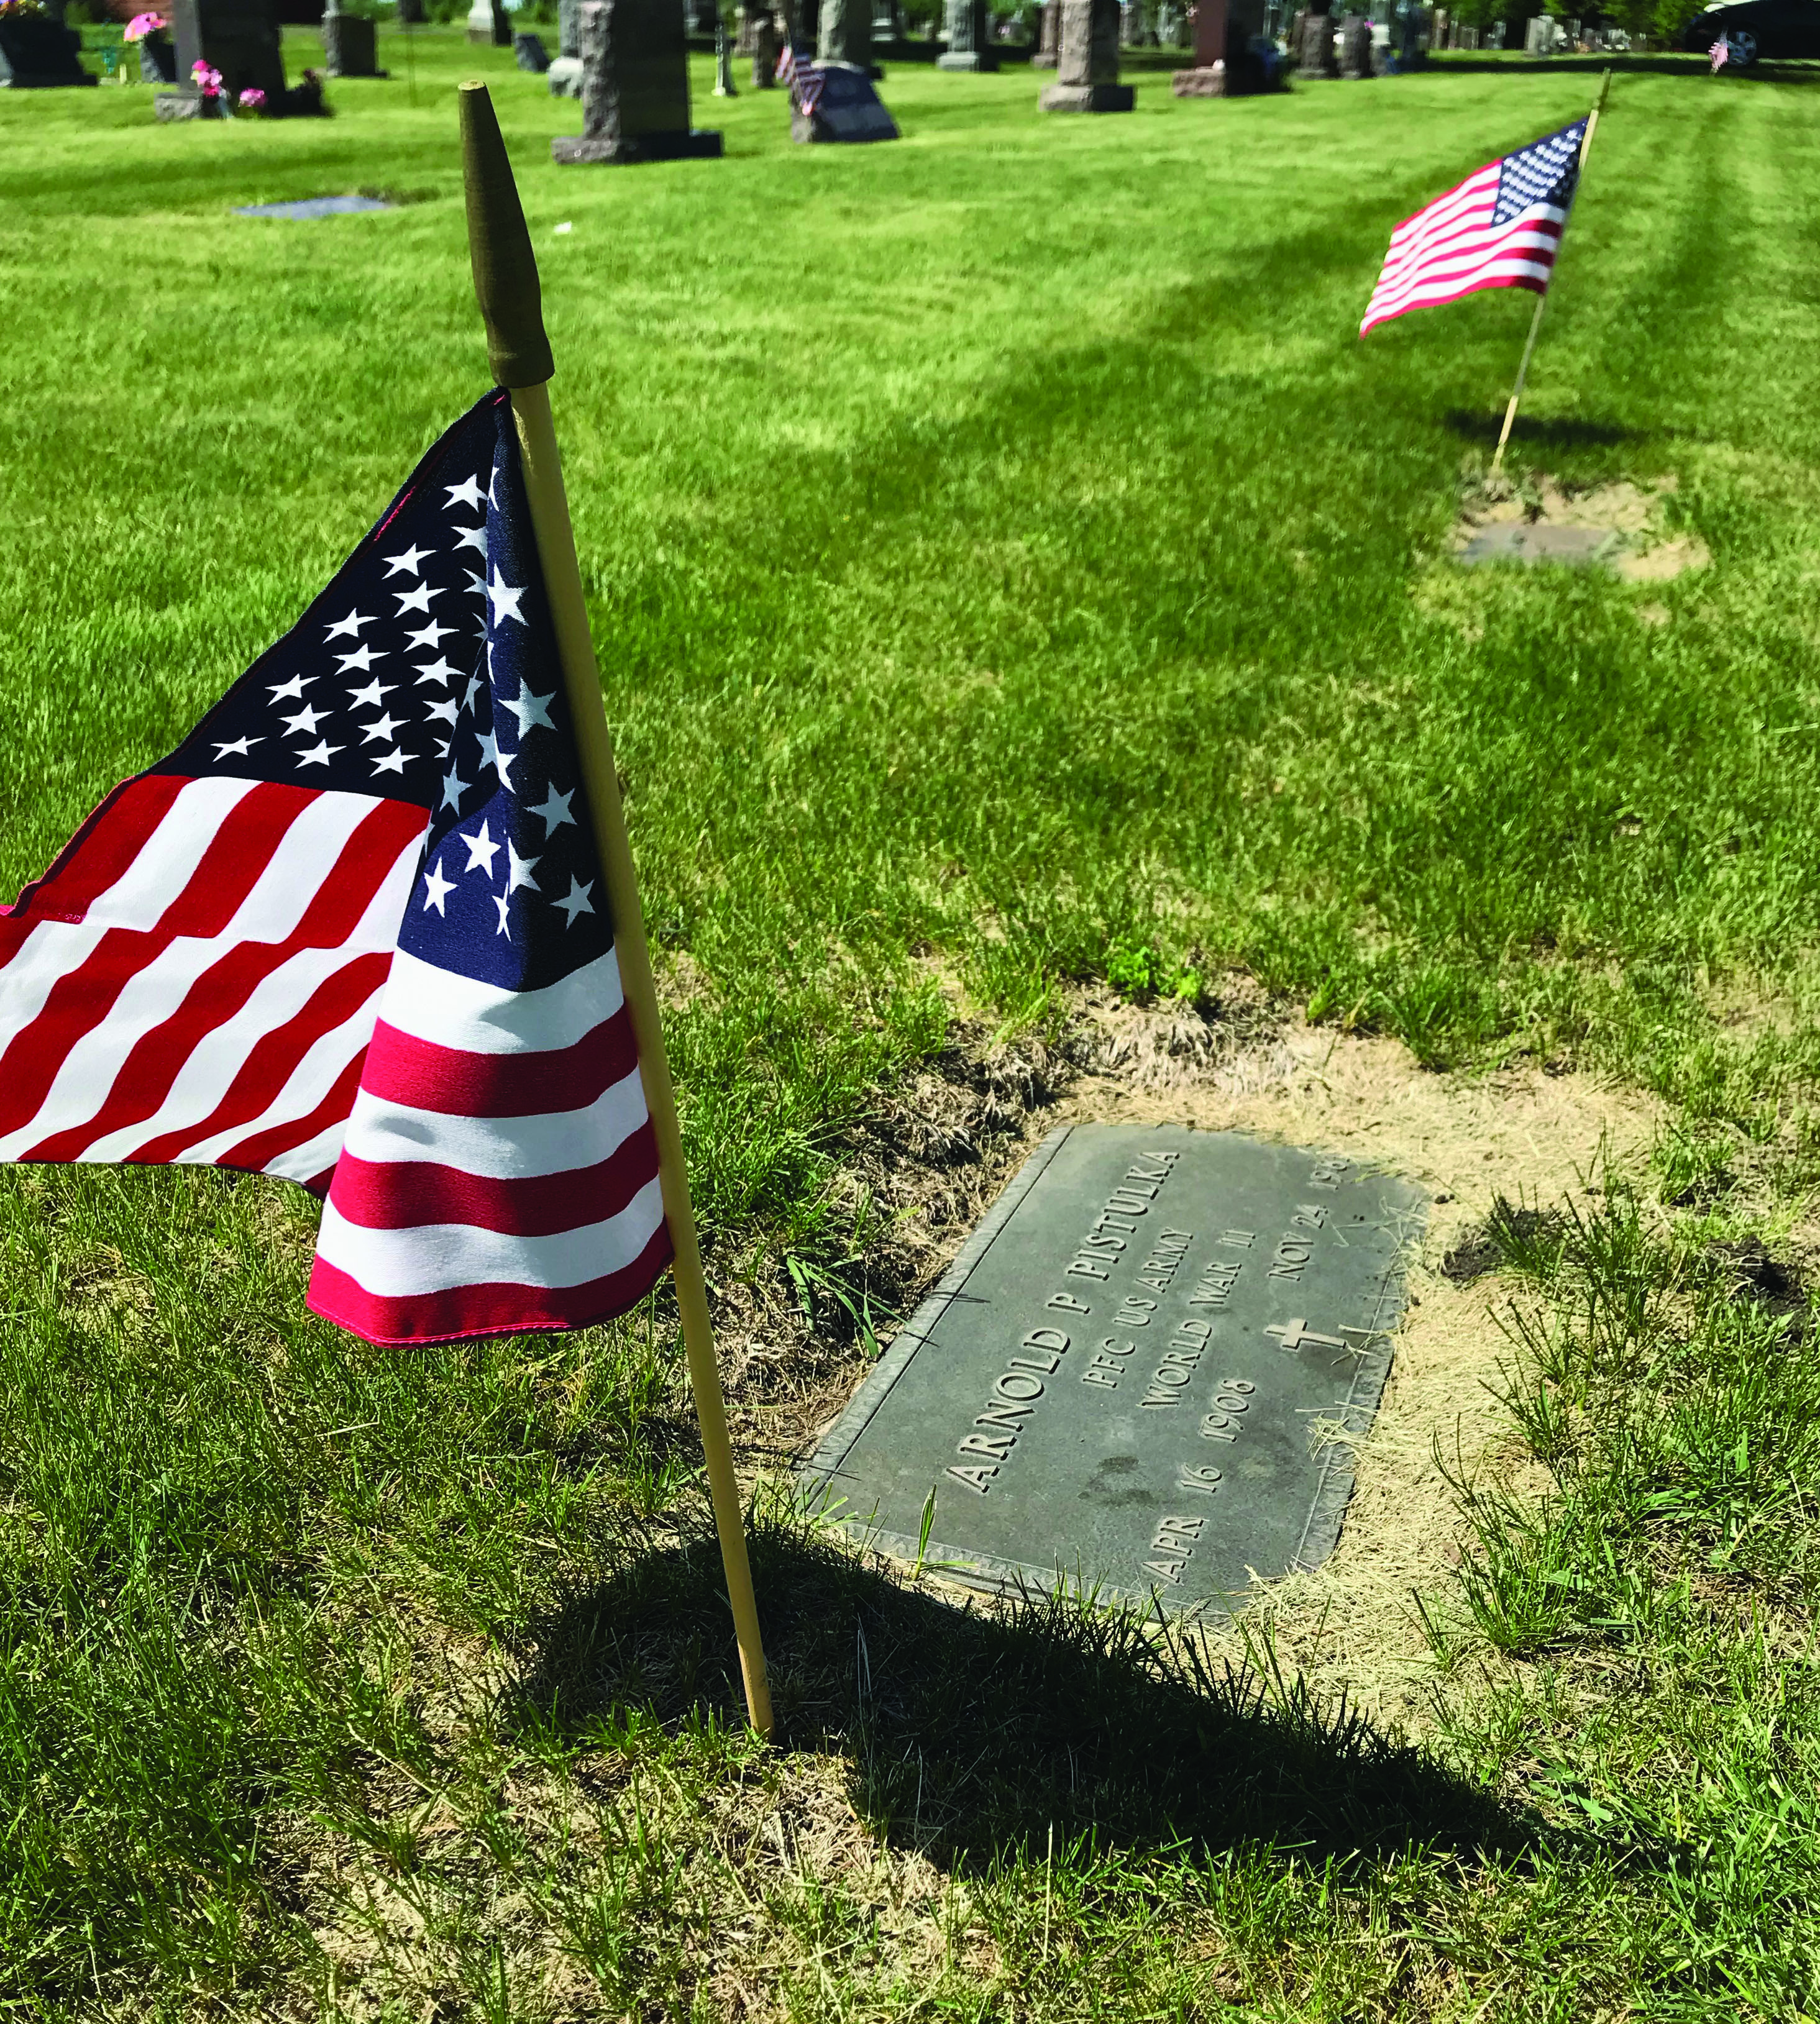 In Morgan, no program was held, but flags were placed at area cemeteries.